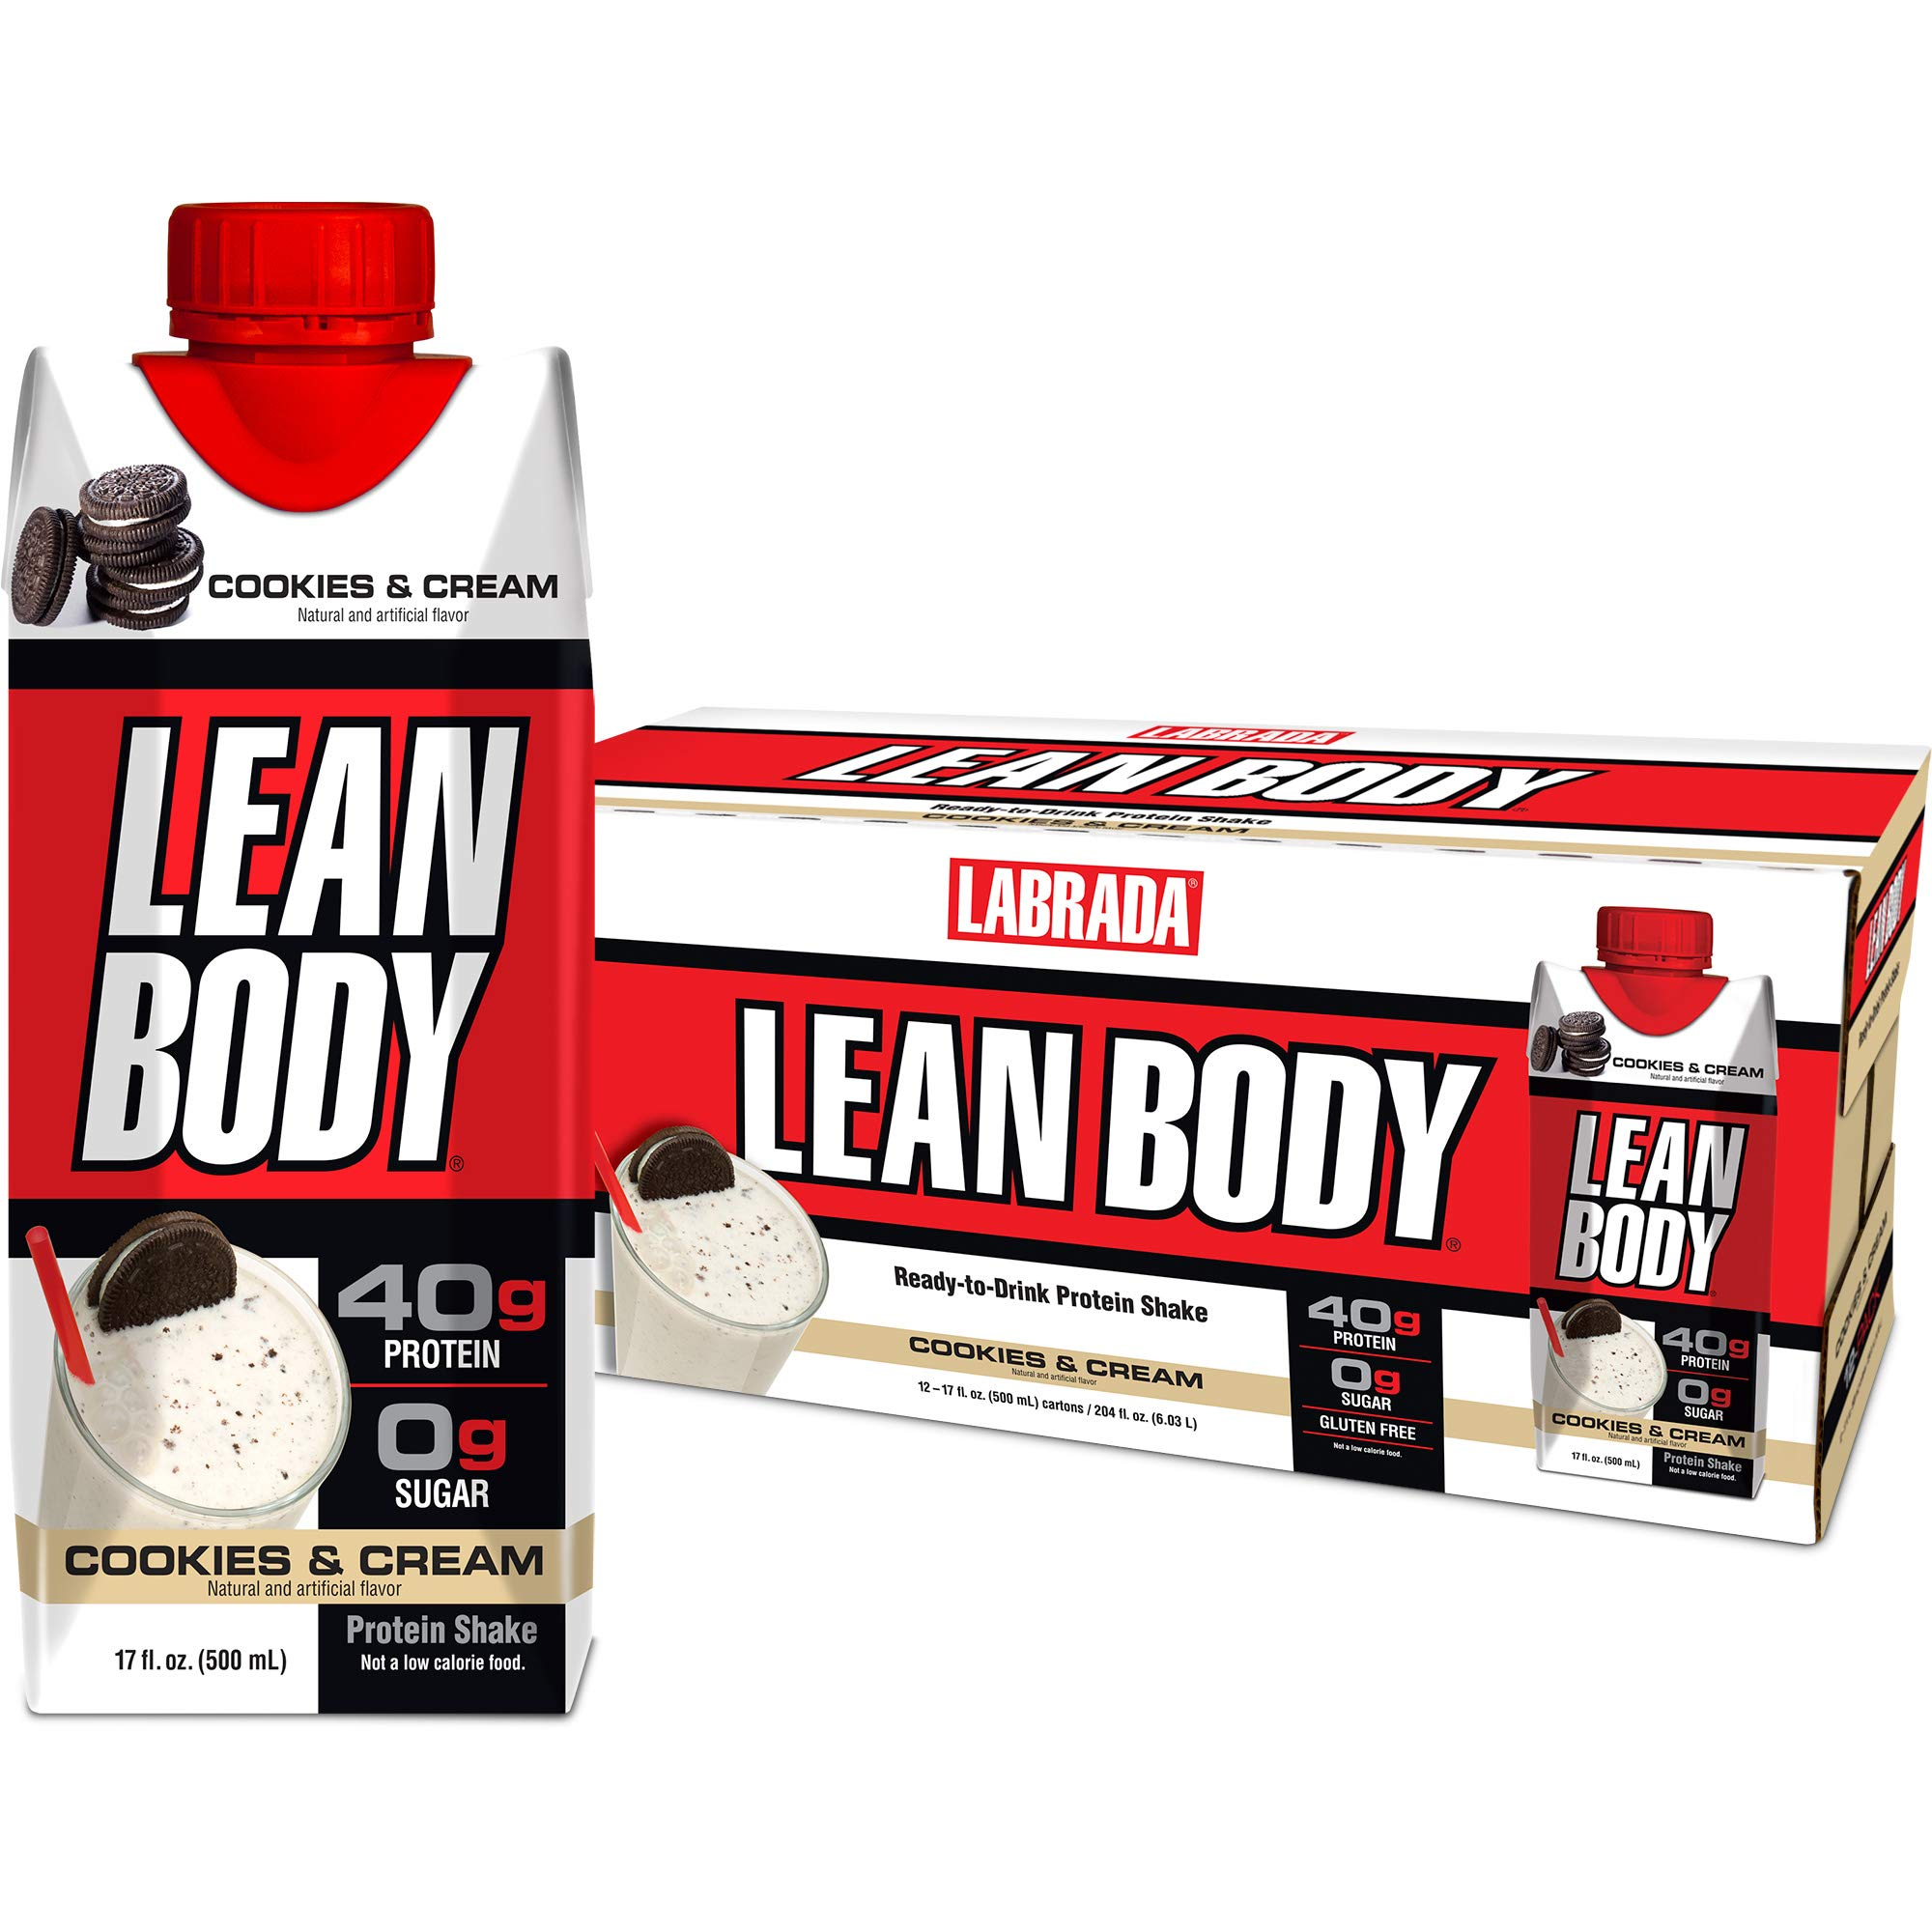 LABRADA - Lean Body Ready to Drink Protein Shake,Convenient On-The-Go Meal Replacement Shake,40 Grams of Protein -Zero Sugar, Lactose & Gluten Free,Cookies and Cream, 17 Fl Oz (Pack of 12) by Labrada